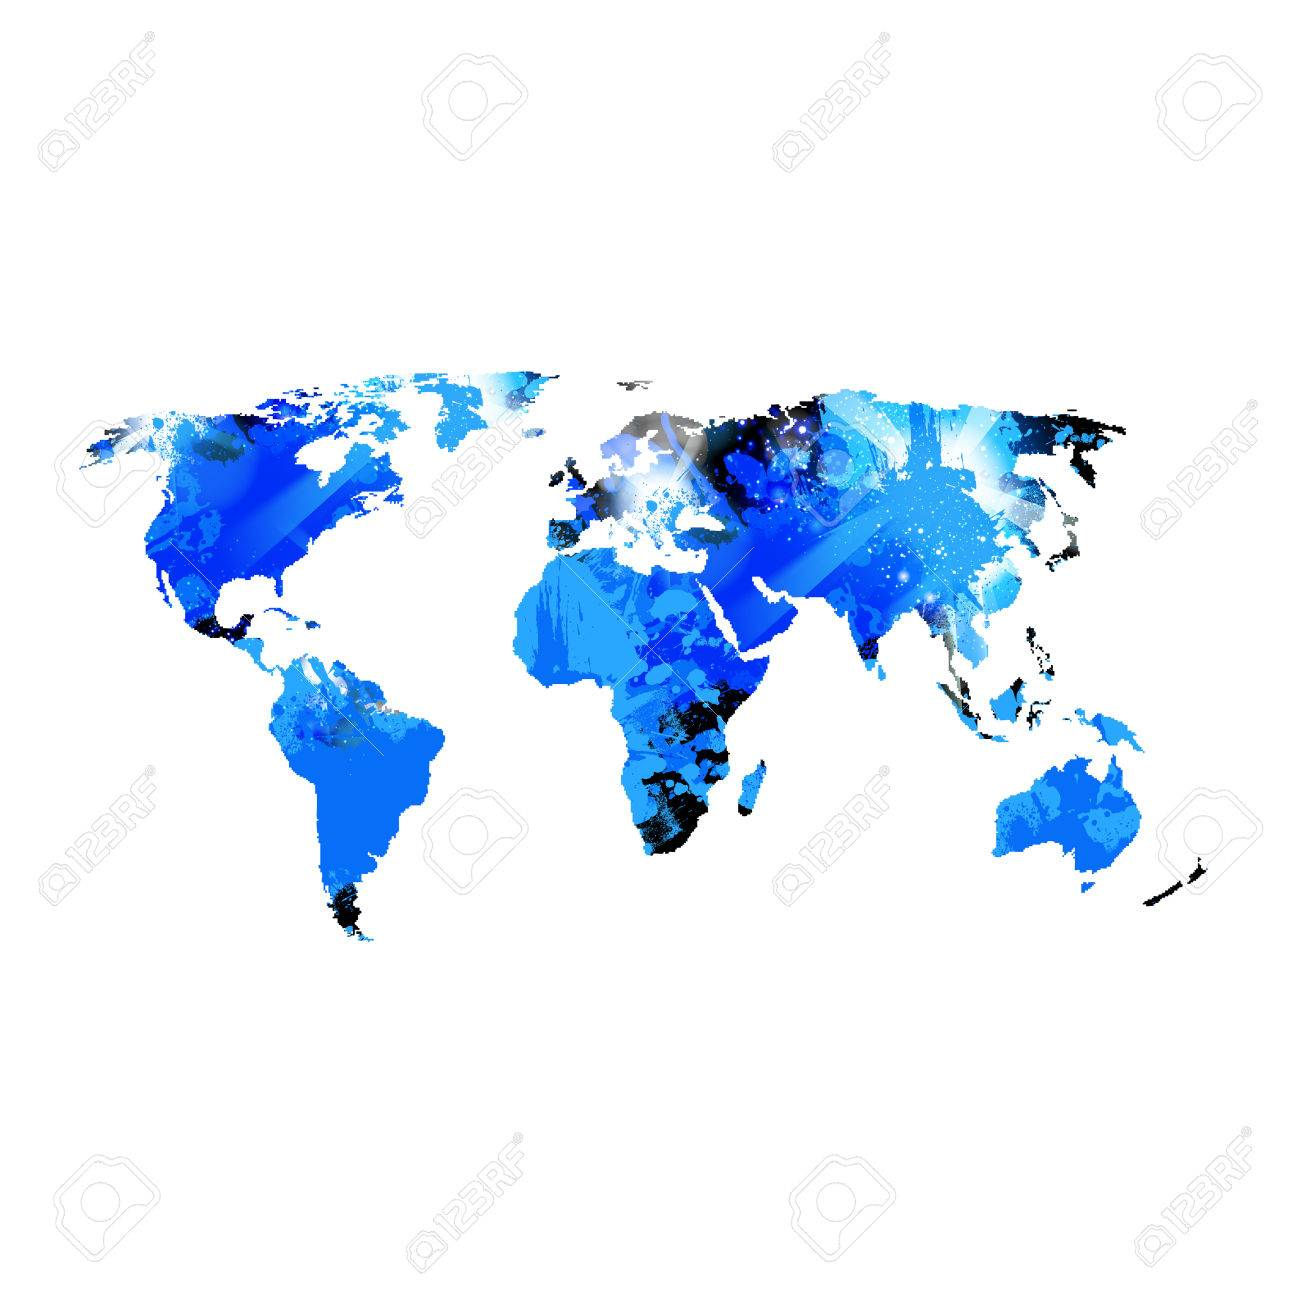 abstract template with world map easy editable royalty free